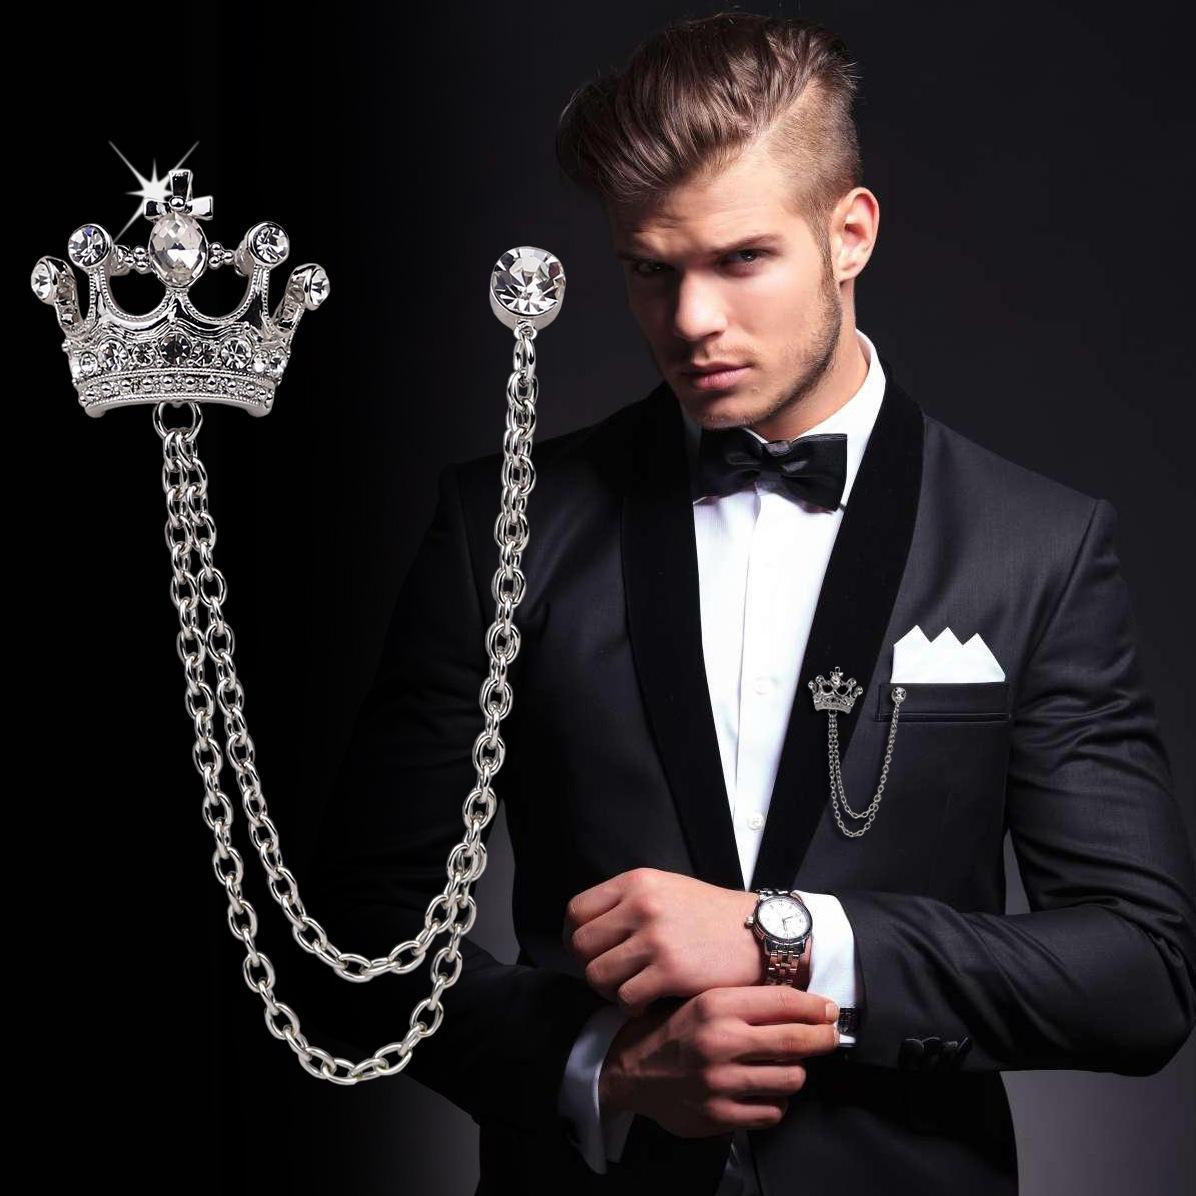 Diamante Broche Crown Terno high-end dos homens de lapela o emblema Vintage Boutonniere Checa cristal broche de jóias Wedding Party Man Favor